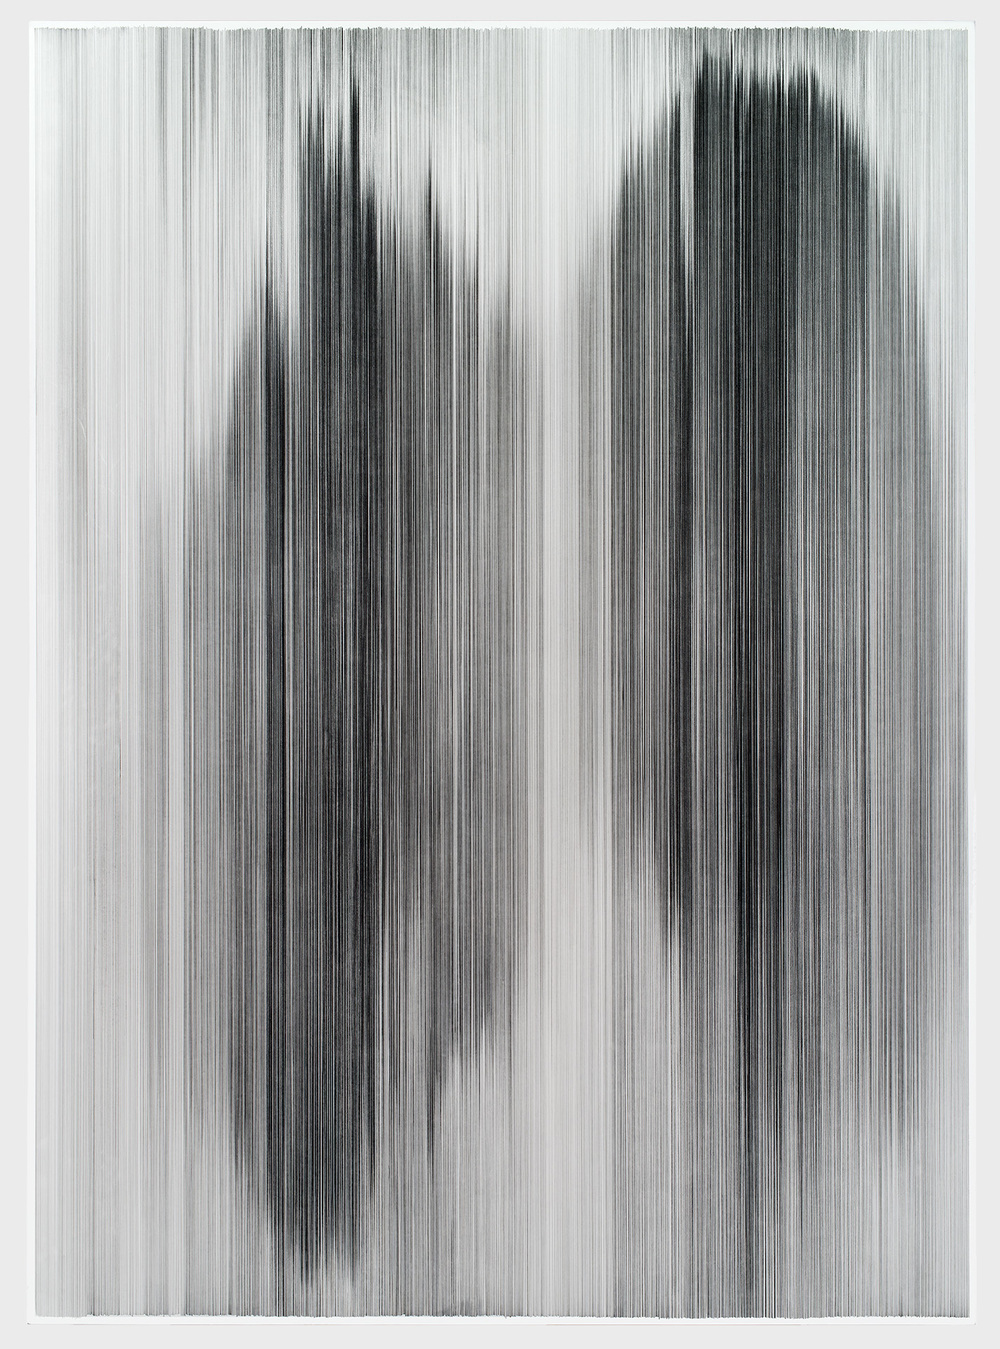 parallel 38   2013 graphite on cotton mat board 60 by 84 inches collection Howard & Melissa Rachofsky, Dallas, TX